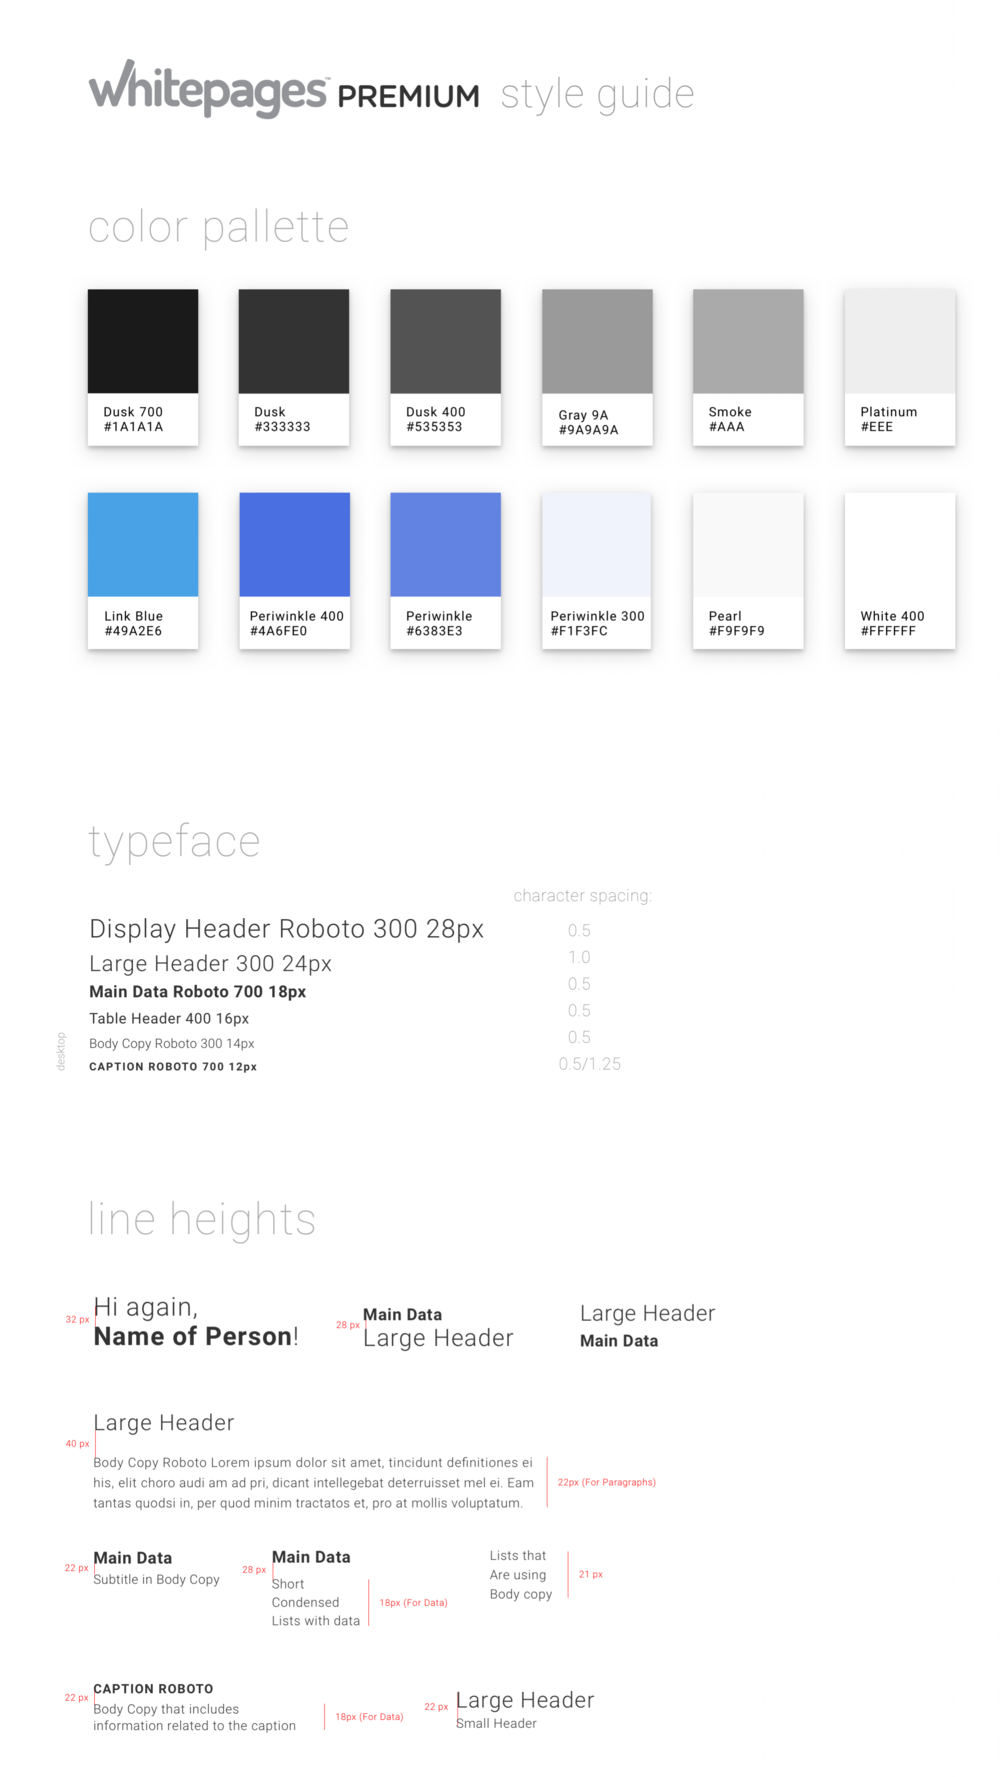 - Prior to my arrival Whitepages was using styles decided by a third party agency that our team agreed were very outdated. Over the course of the year, the design team spent a lot of time iterating on a new style guide that could be flexible enough to be used across products.We wanted to be sure to convey:1. Authority2 . Transparency3. Approachability4. Integrity